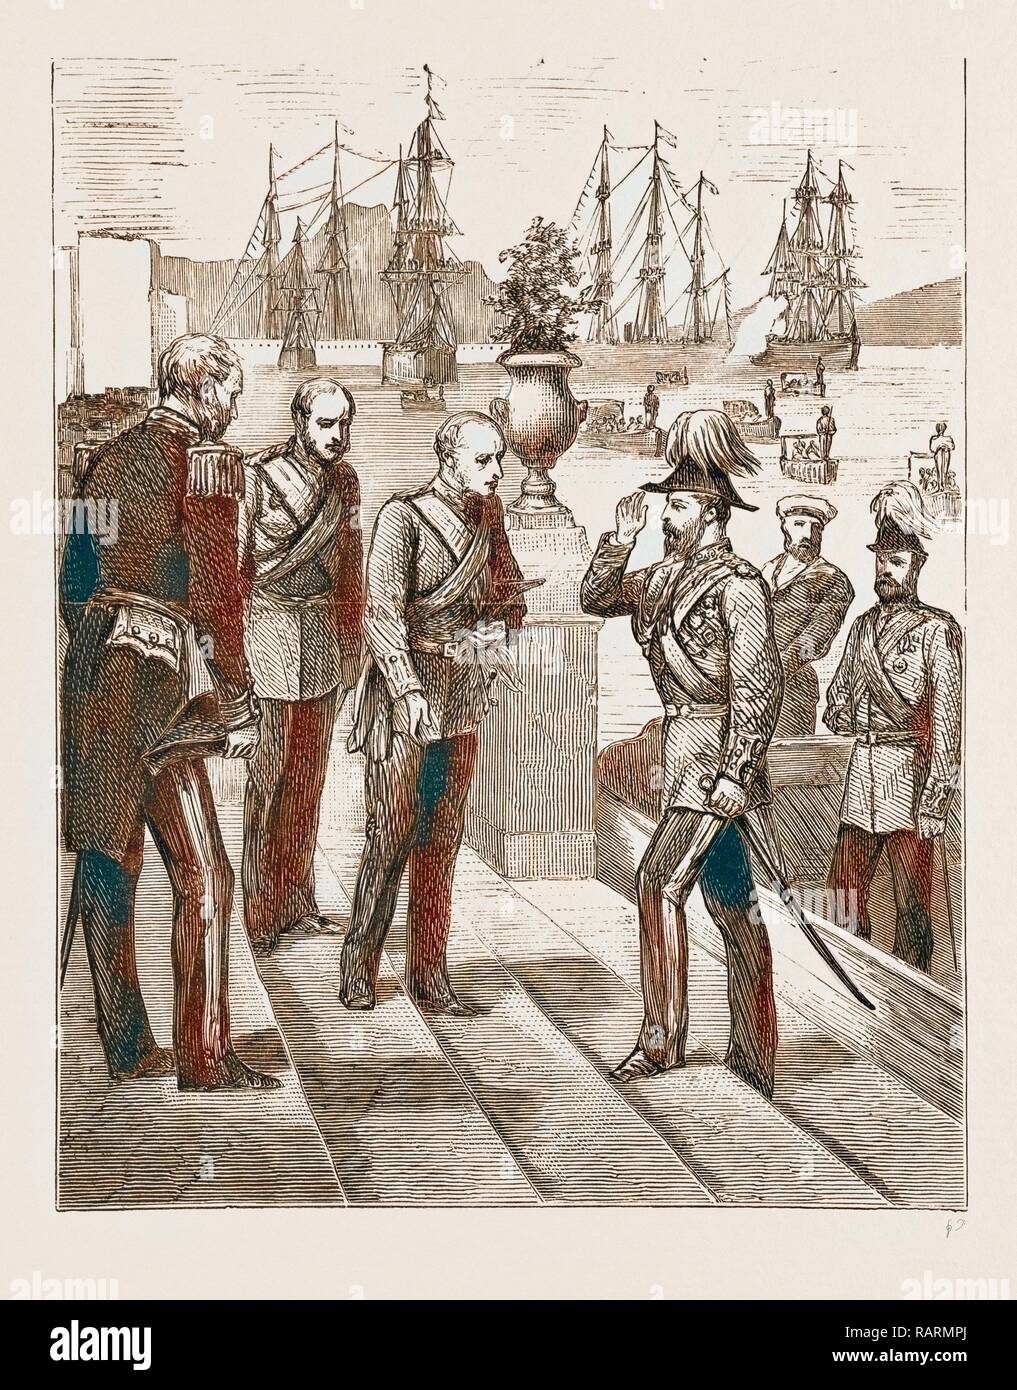 THE PRINCE OF WALES AT MALTA, 1876: RECEPTION OF THE PRINCE BY GENERAL SIR C.T. VAN STRAUBENZEE, GOVERNOR OF THE reimagined - Stock Image